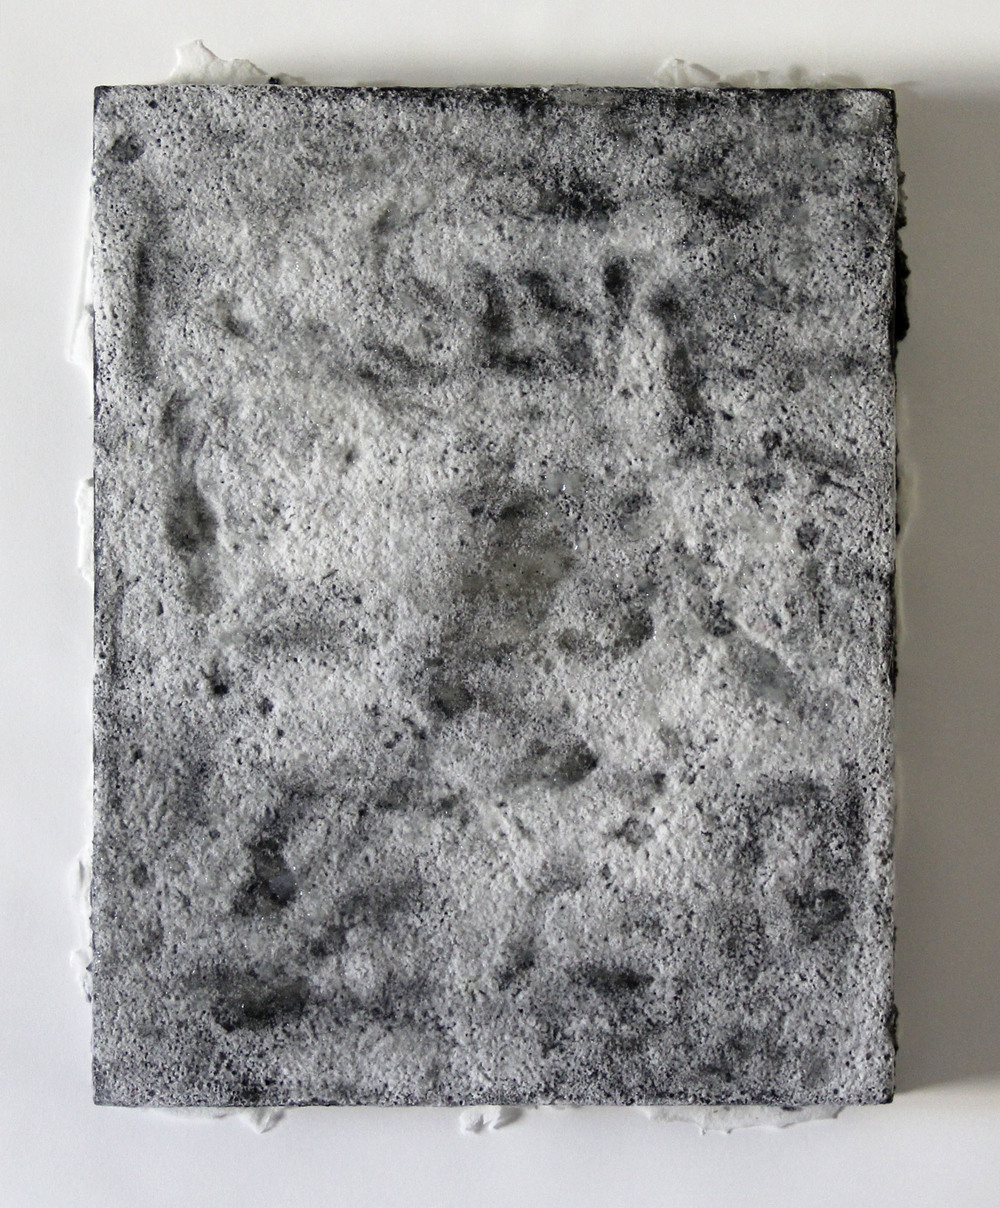 borax 1   2014   borax, graphite, acrylic on plexiglass   14 x 11 x 1.5 inches